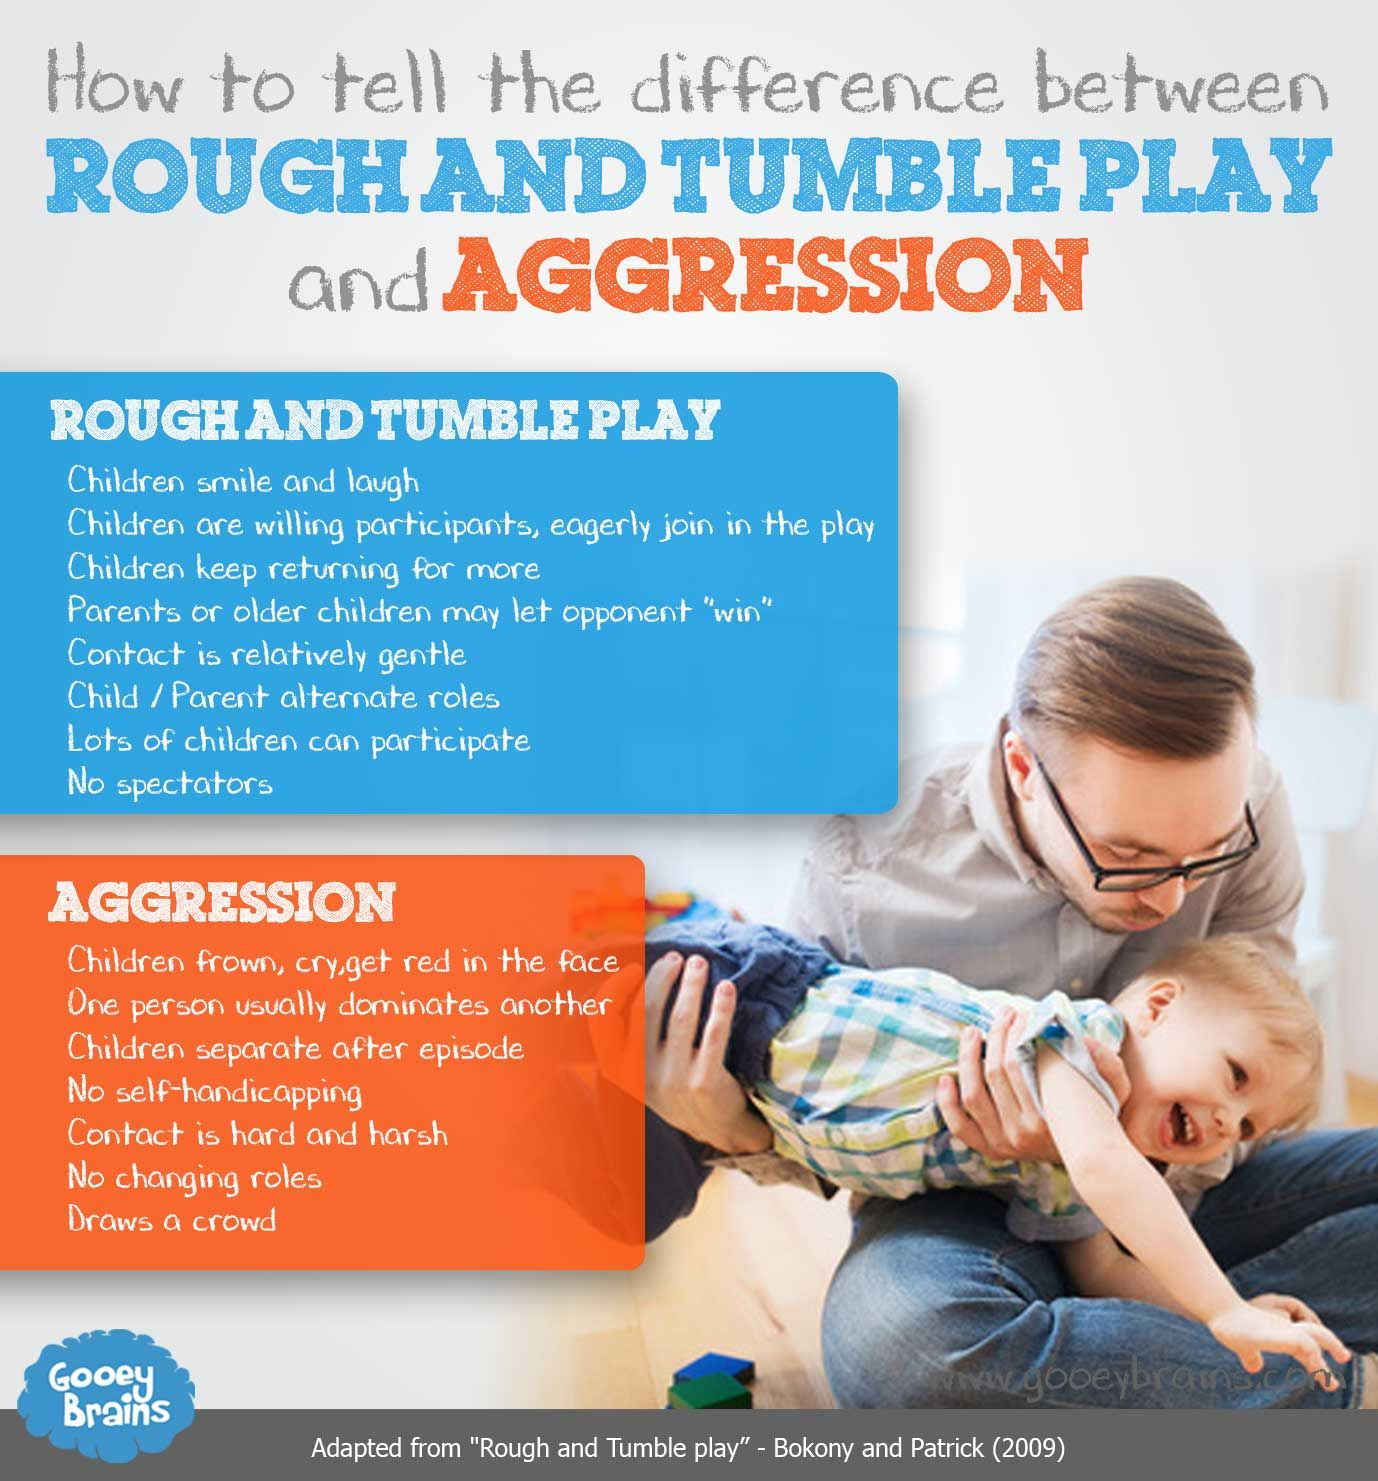 How to tell the difference between rough and tumble play